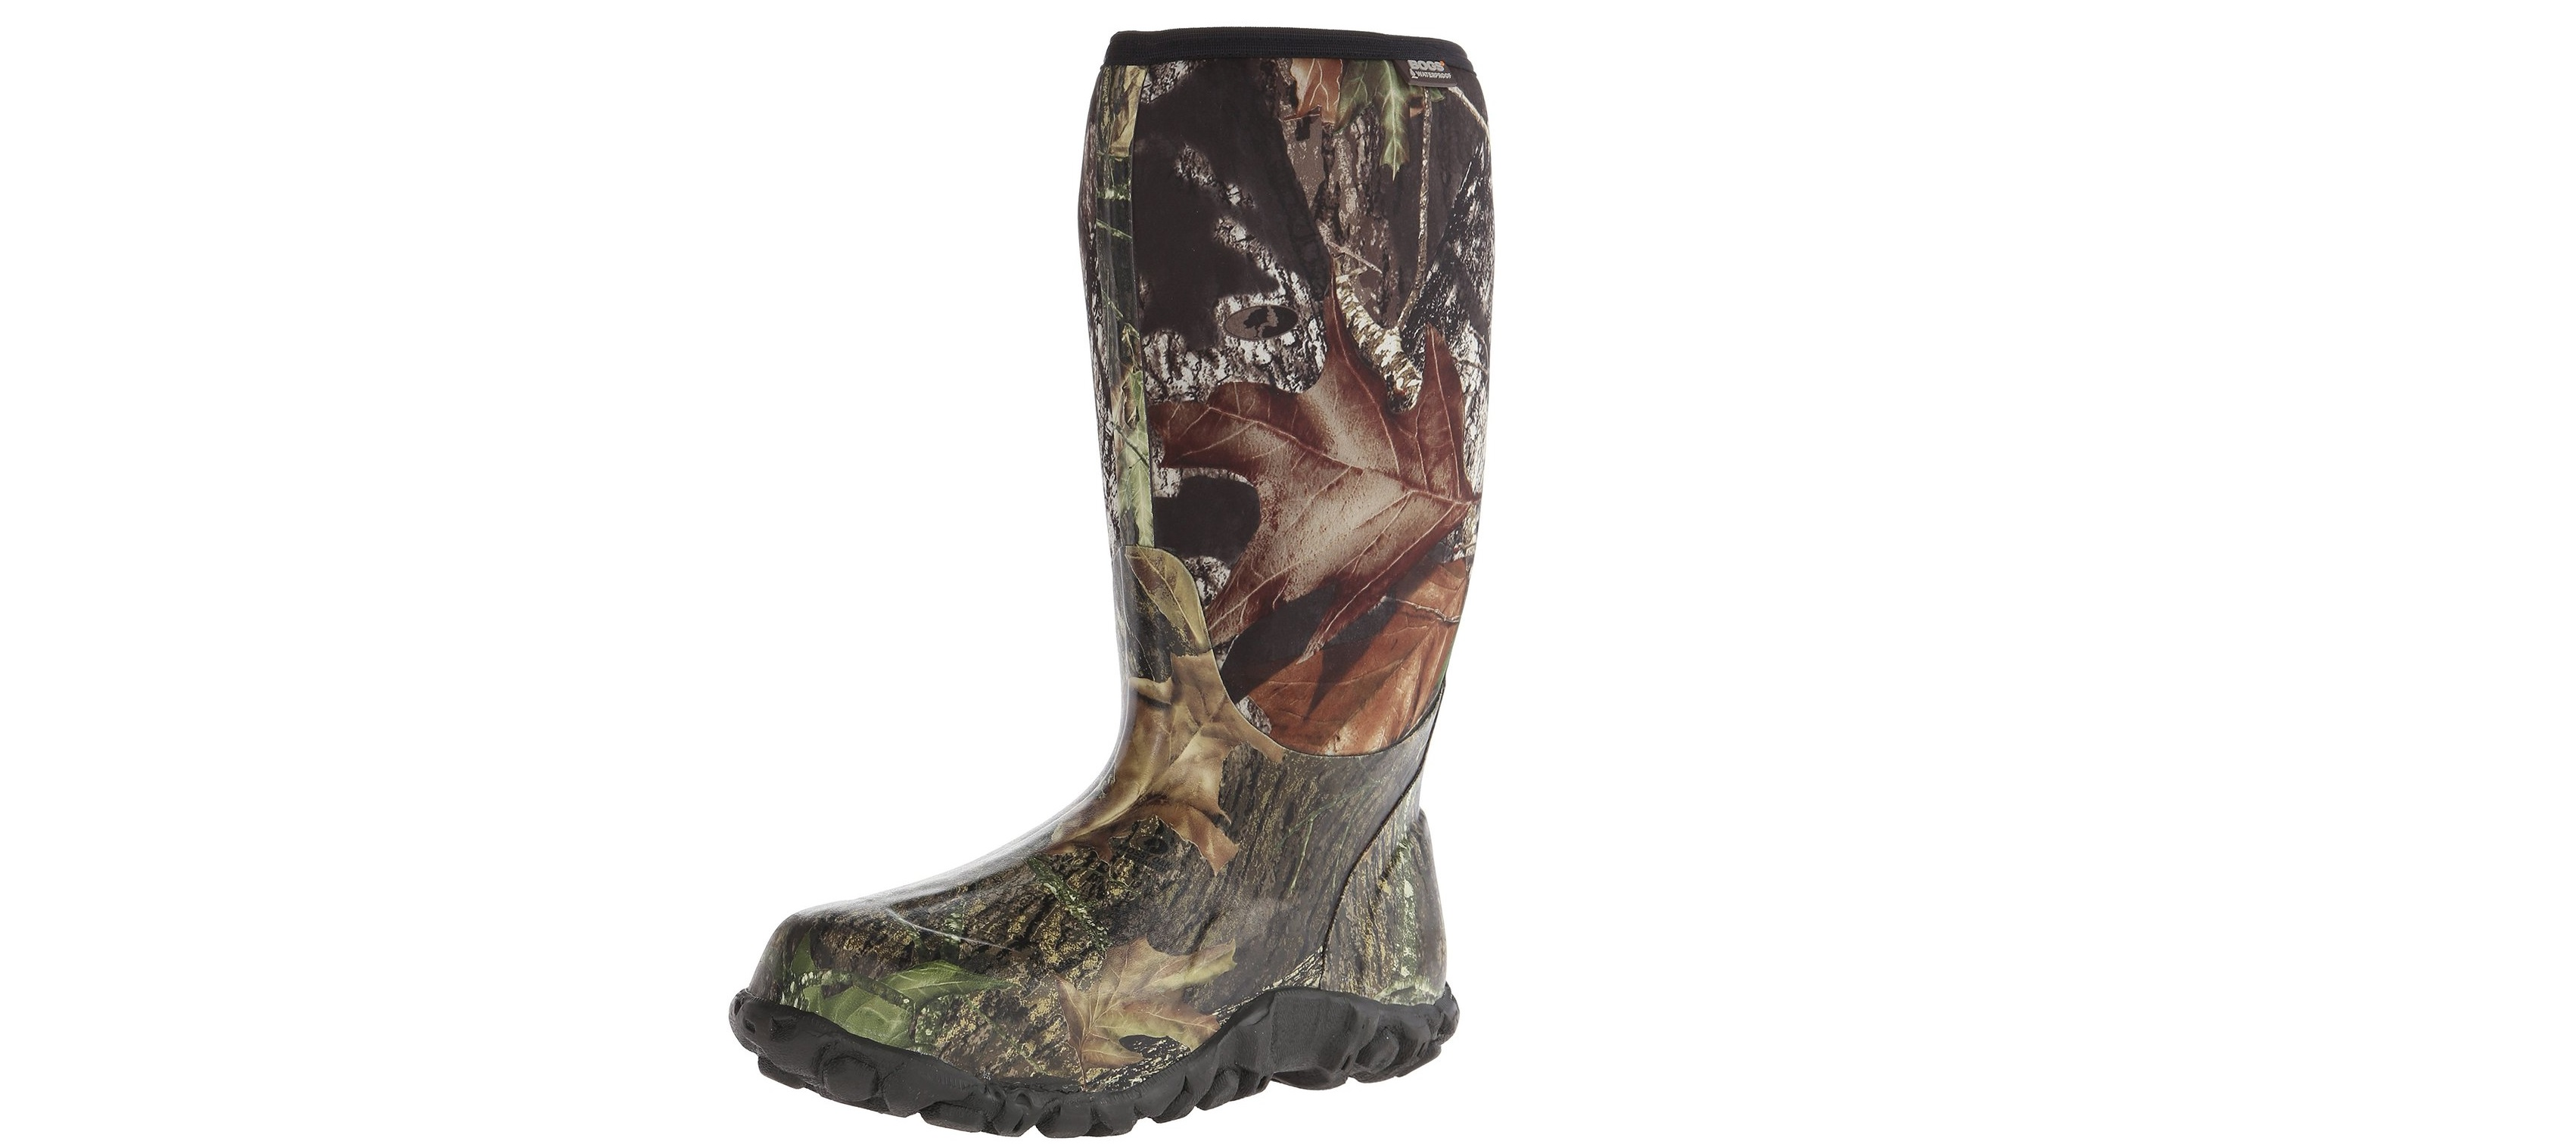 Bogs Men's Classic High Camo Boot – The Review